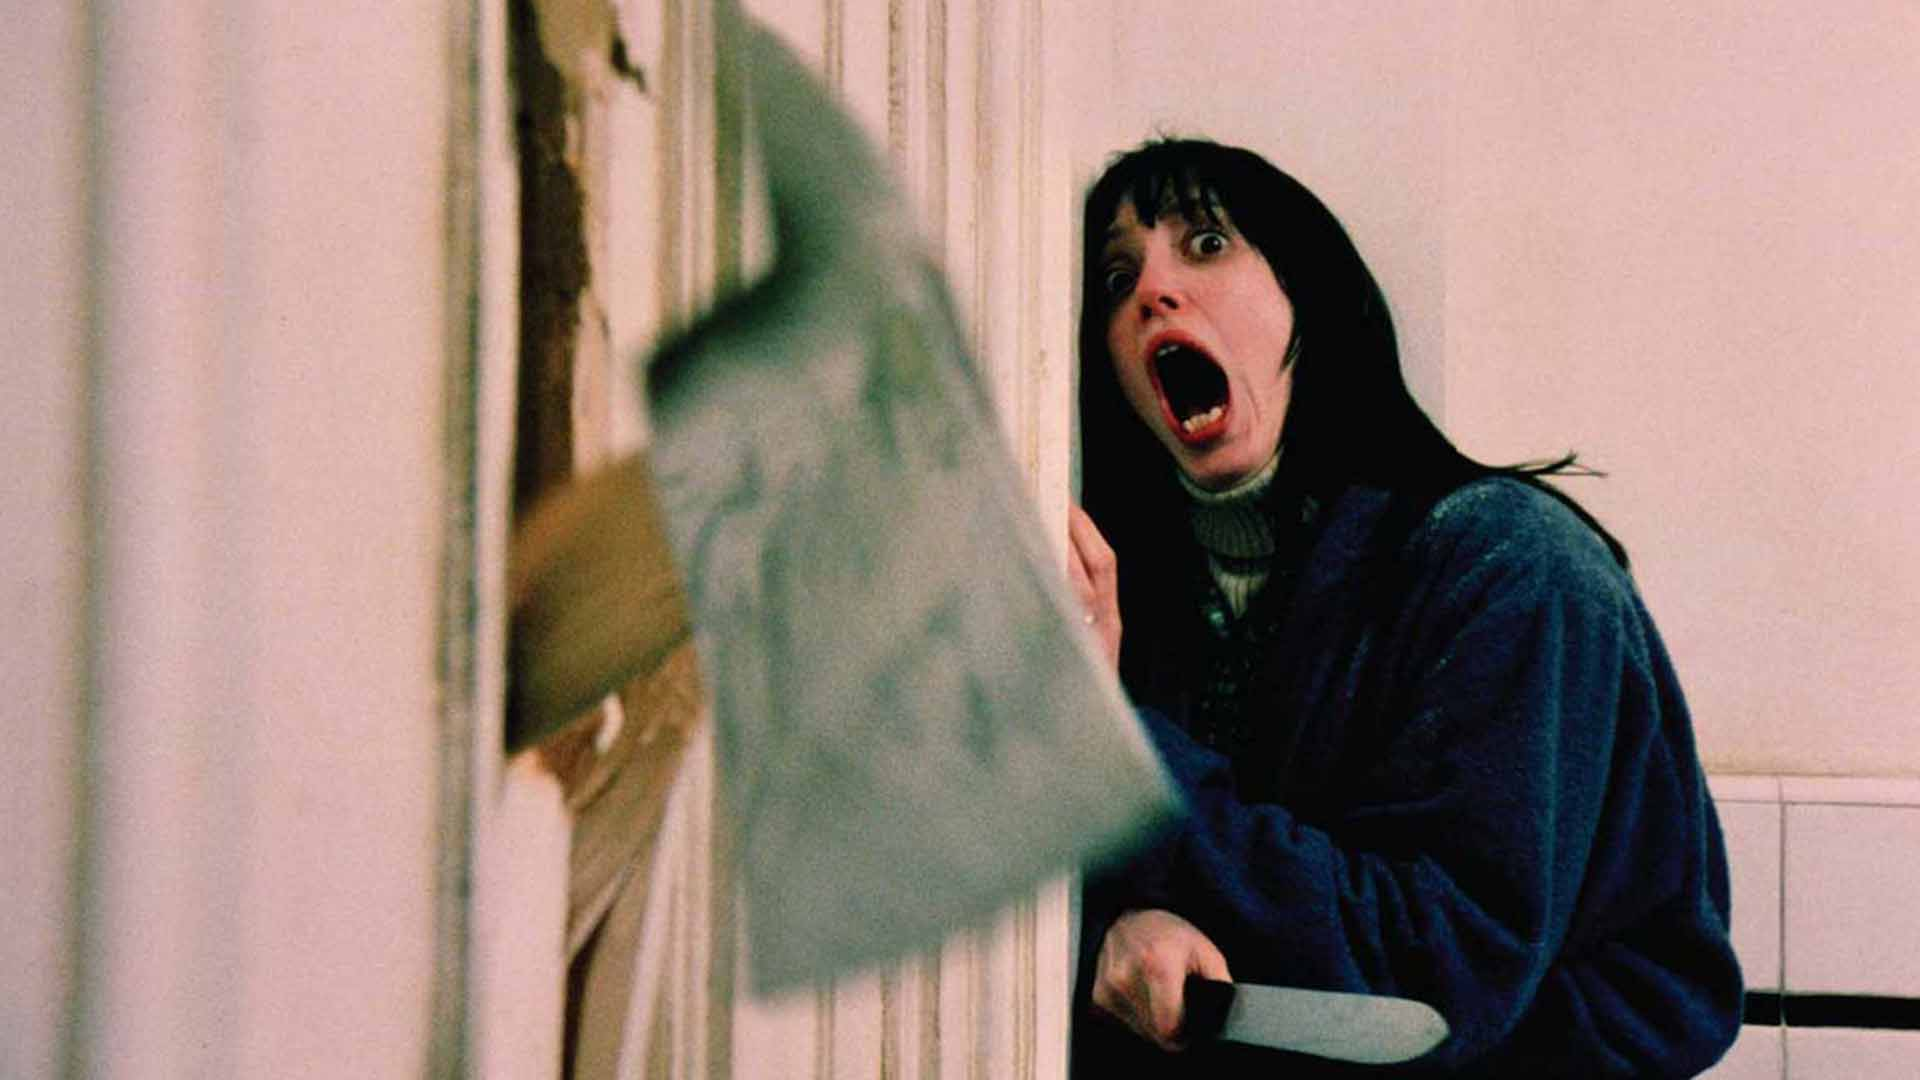 Jack Nicholson with an ax with Shelley Duvall in The Shining